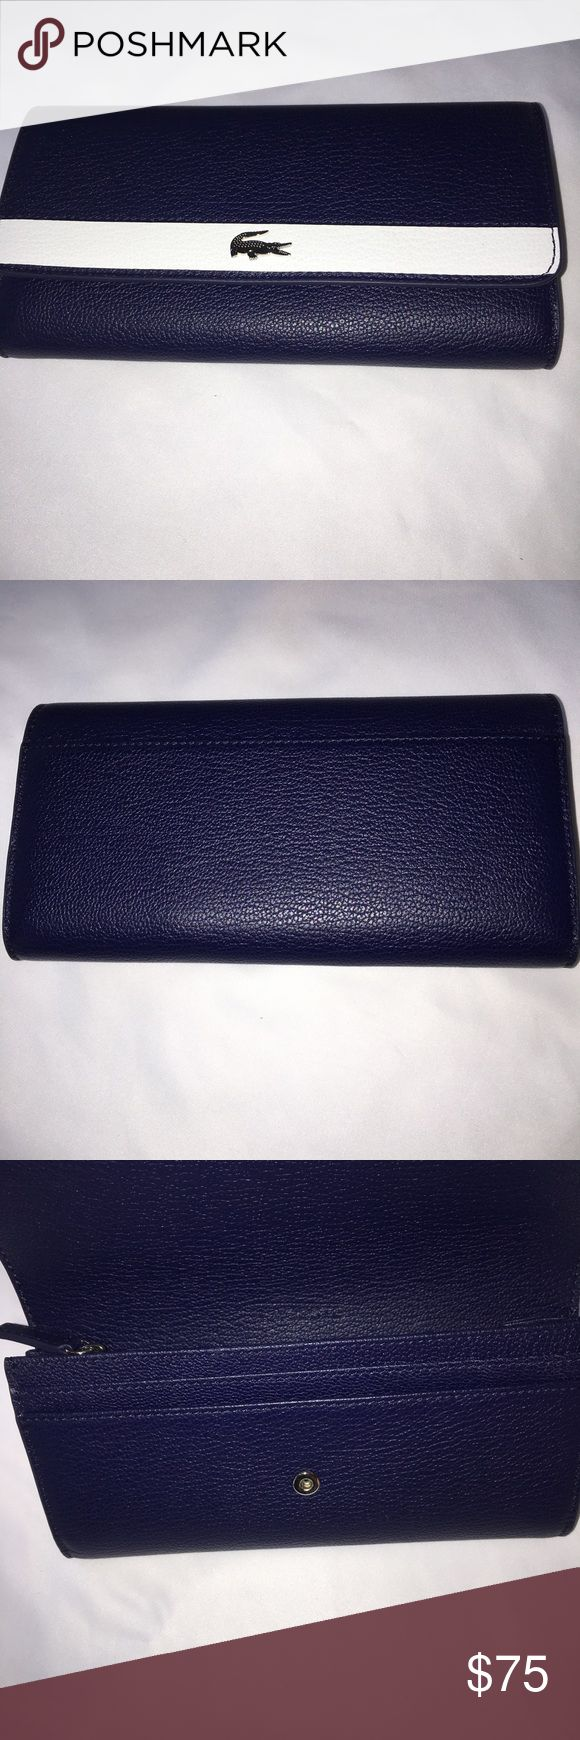 Lacoste navy and white wallet Cow leather. Snap closure. Outside open pocket. 4 large open pockets for dollar bills.  8 credit card pockets. Zip coin pocket in center of inside c Lacoste Bags Wallets